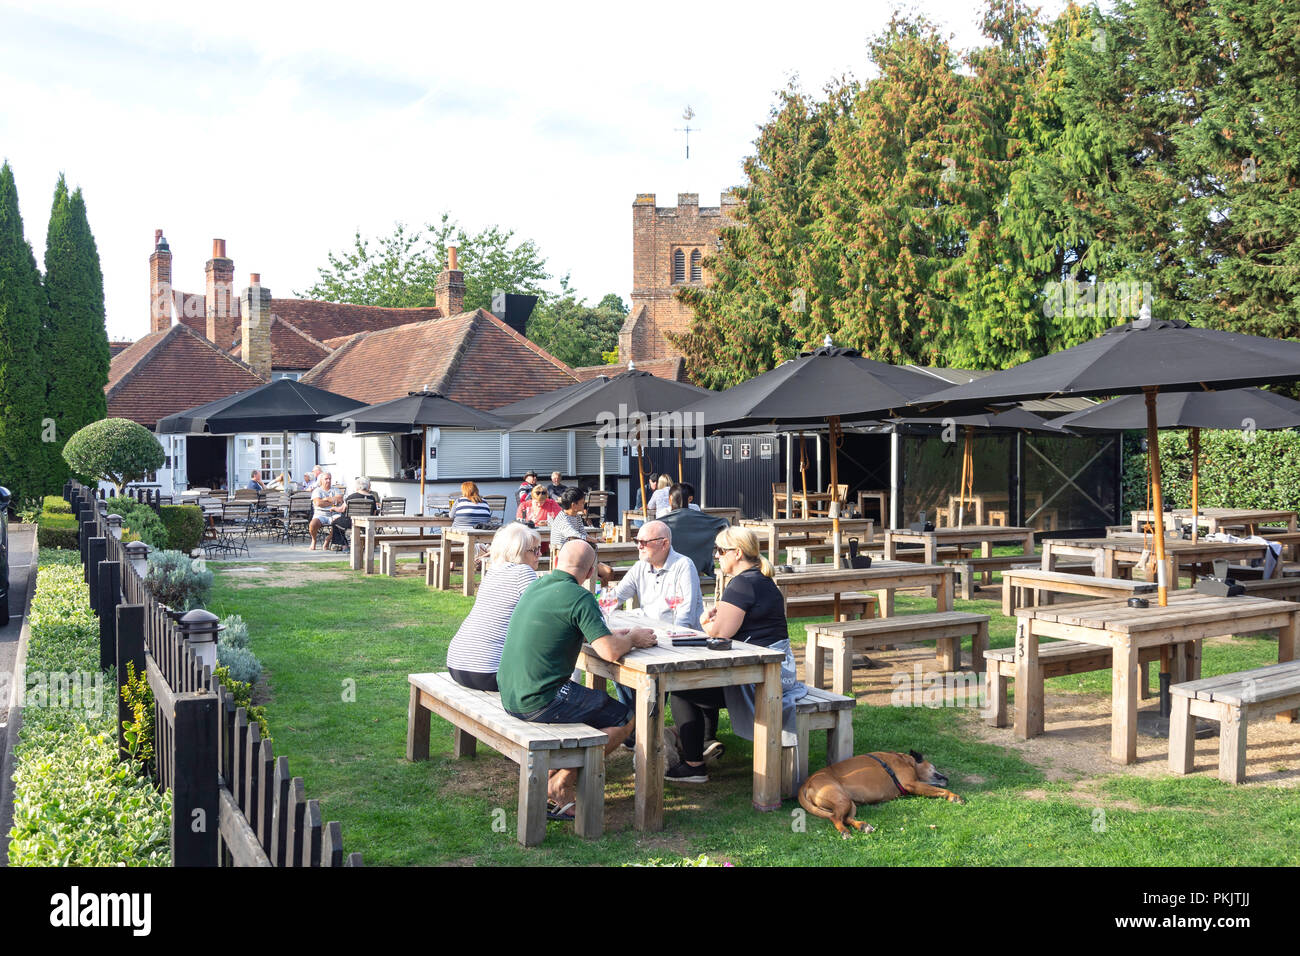 Beer garden at the 17th century The Black Horse Pub, Windmill Road, Fulmer, Buckinghamshire, England, United Kingdom - Stock Image